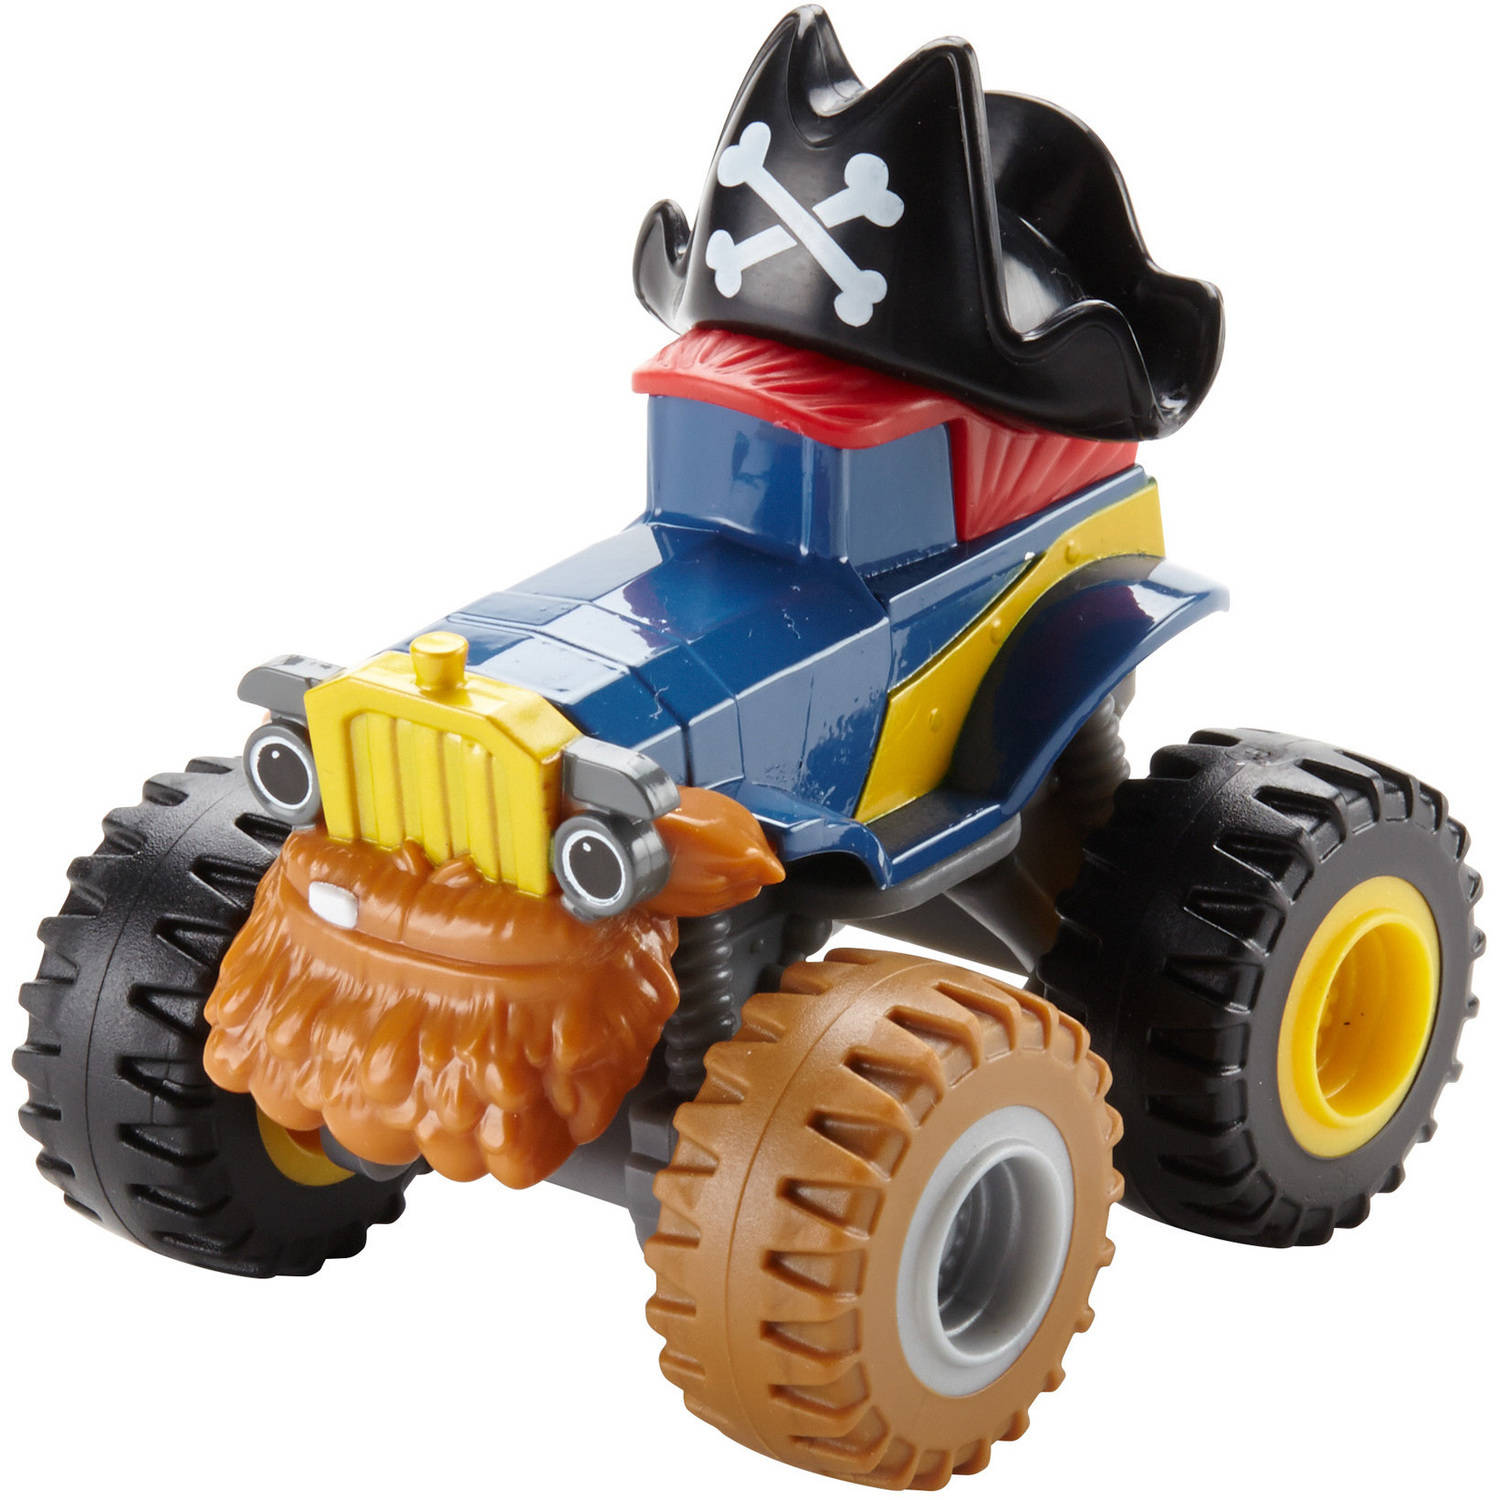 Nickelodeon Blaze and the Monster Machines Pegwheel Pete Diecast Car by Nickelodeon Blaze and the Monster Machines